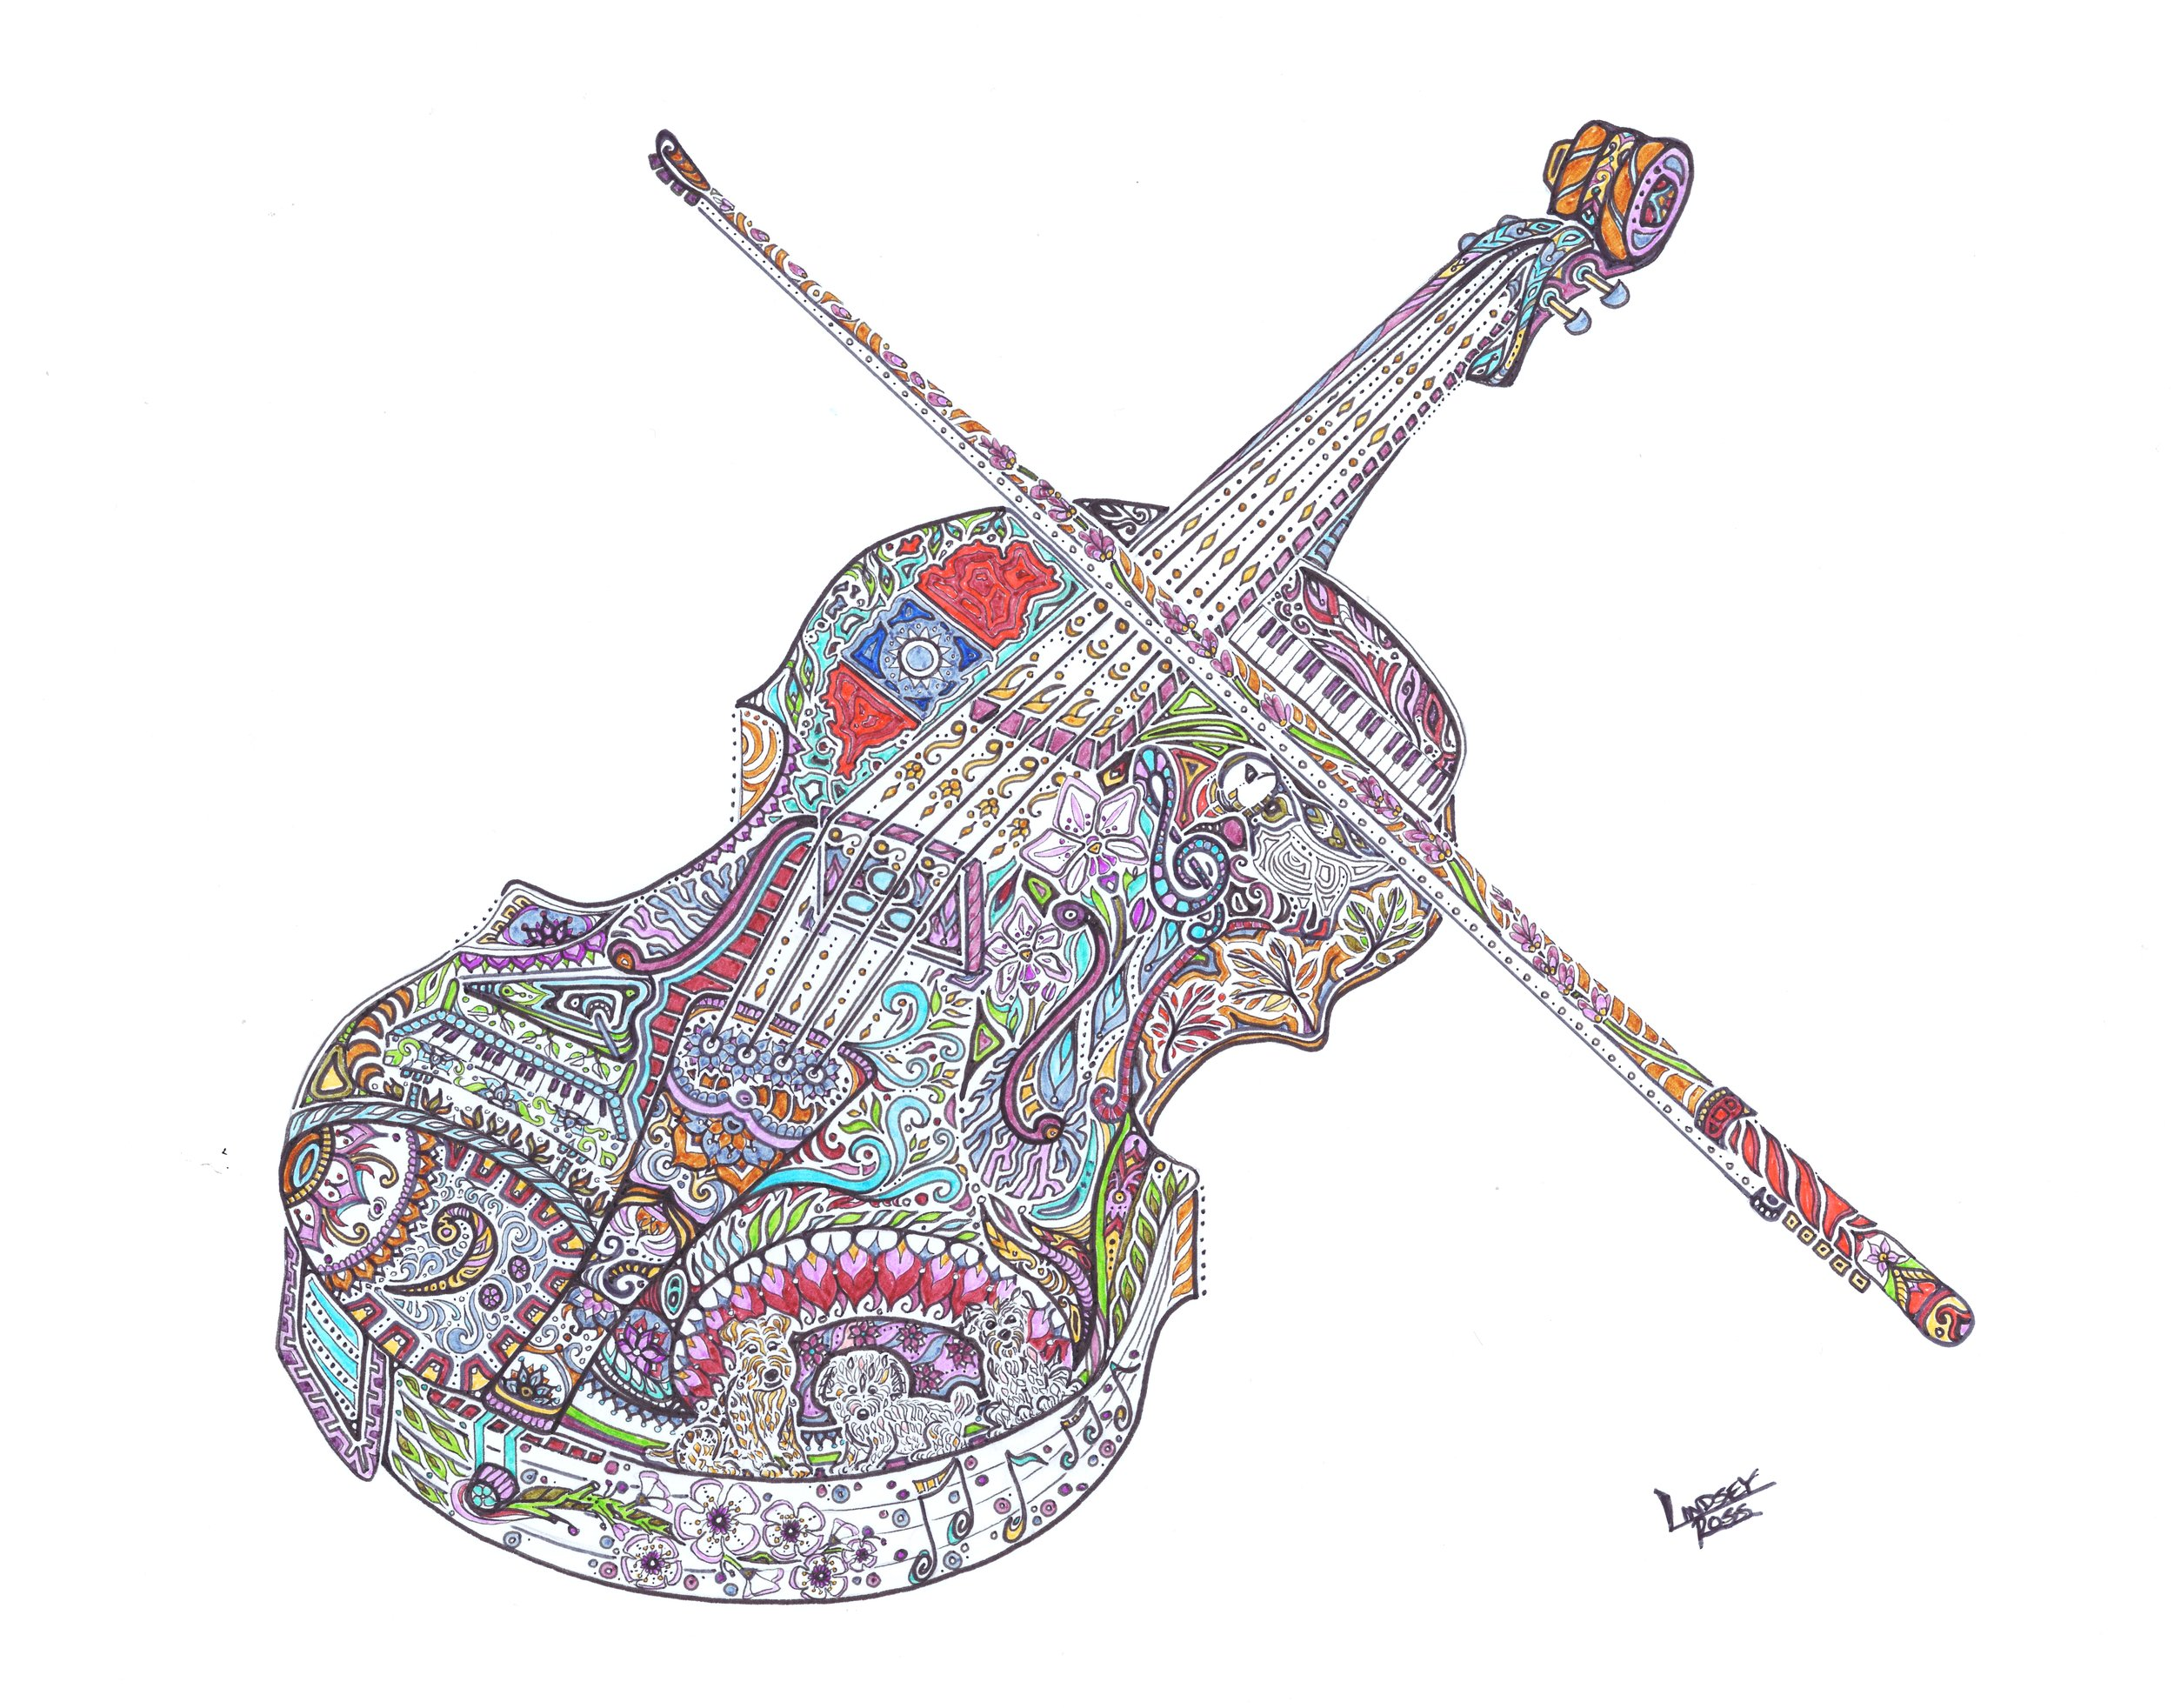 Judy's Violin - This was certainly one of my favorite pieces to complete. I met Judy and Mike at Michael's Flavor Shack in Souris as they purchased his rooster print. Mike later reached out to me to ask about a custom violin for his wife's Christmas gift.This piece include's many of Judy's favorite things. The piano, their 3 dogs, a treble clef, musical notes, Taiwan, a puffin, a bass clef, lavender, orchids, maple leaves, and even Tawainese plum blossoms.